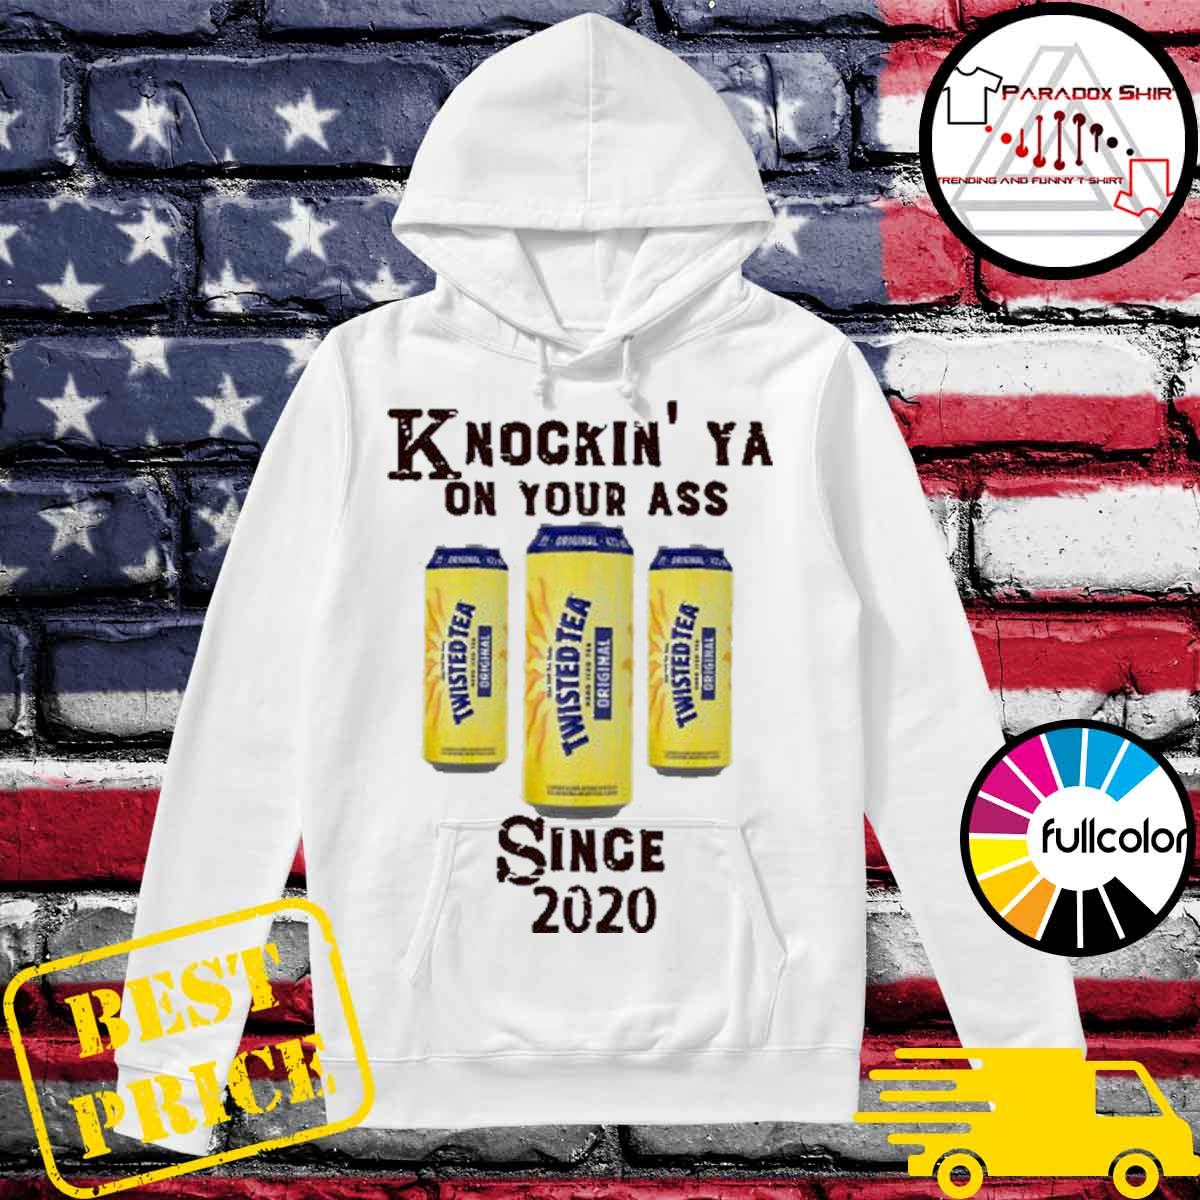 Knockin' Ya on your as Twisted Tea since 2020 Shirt Hoodie